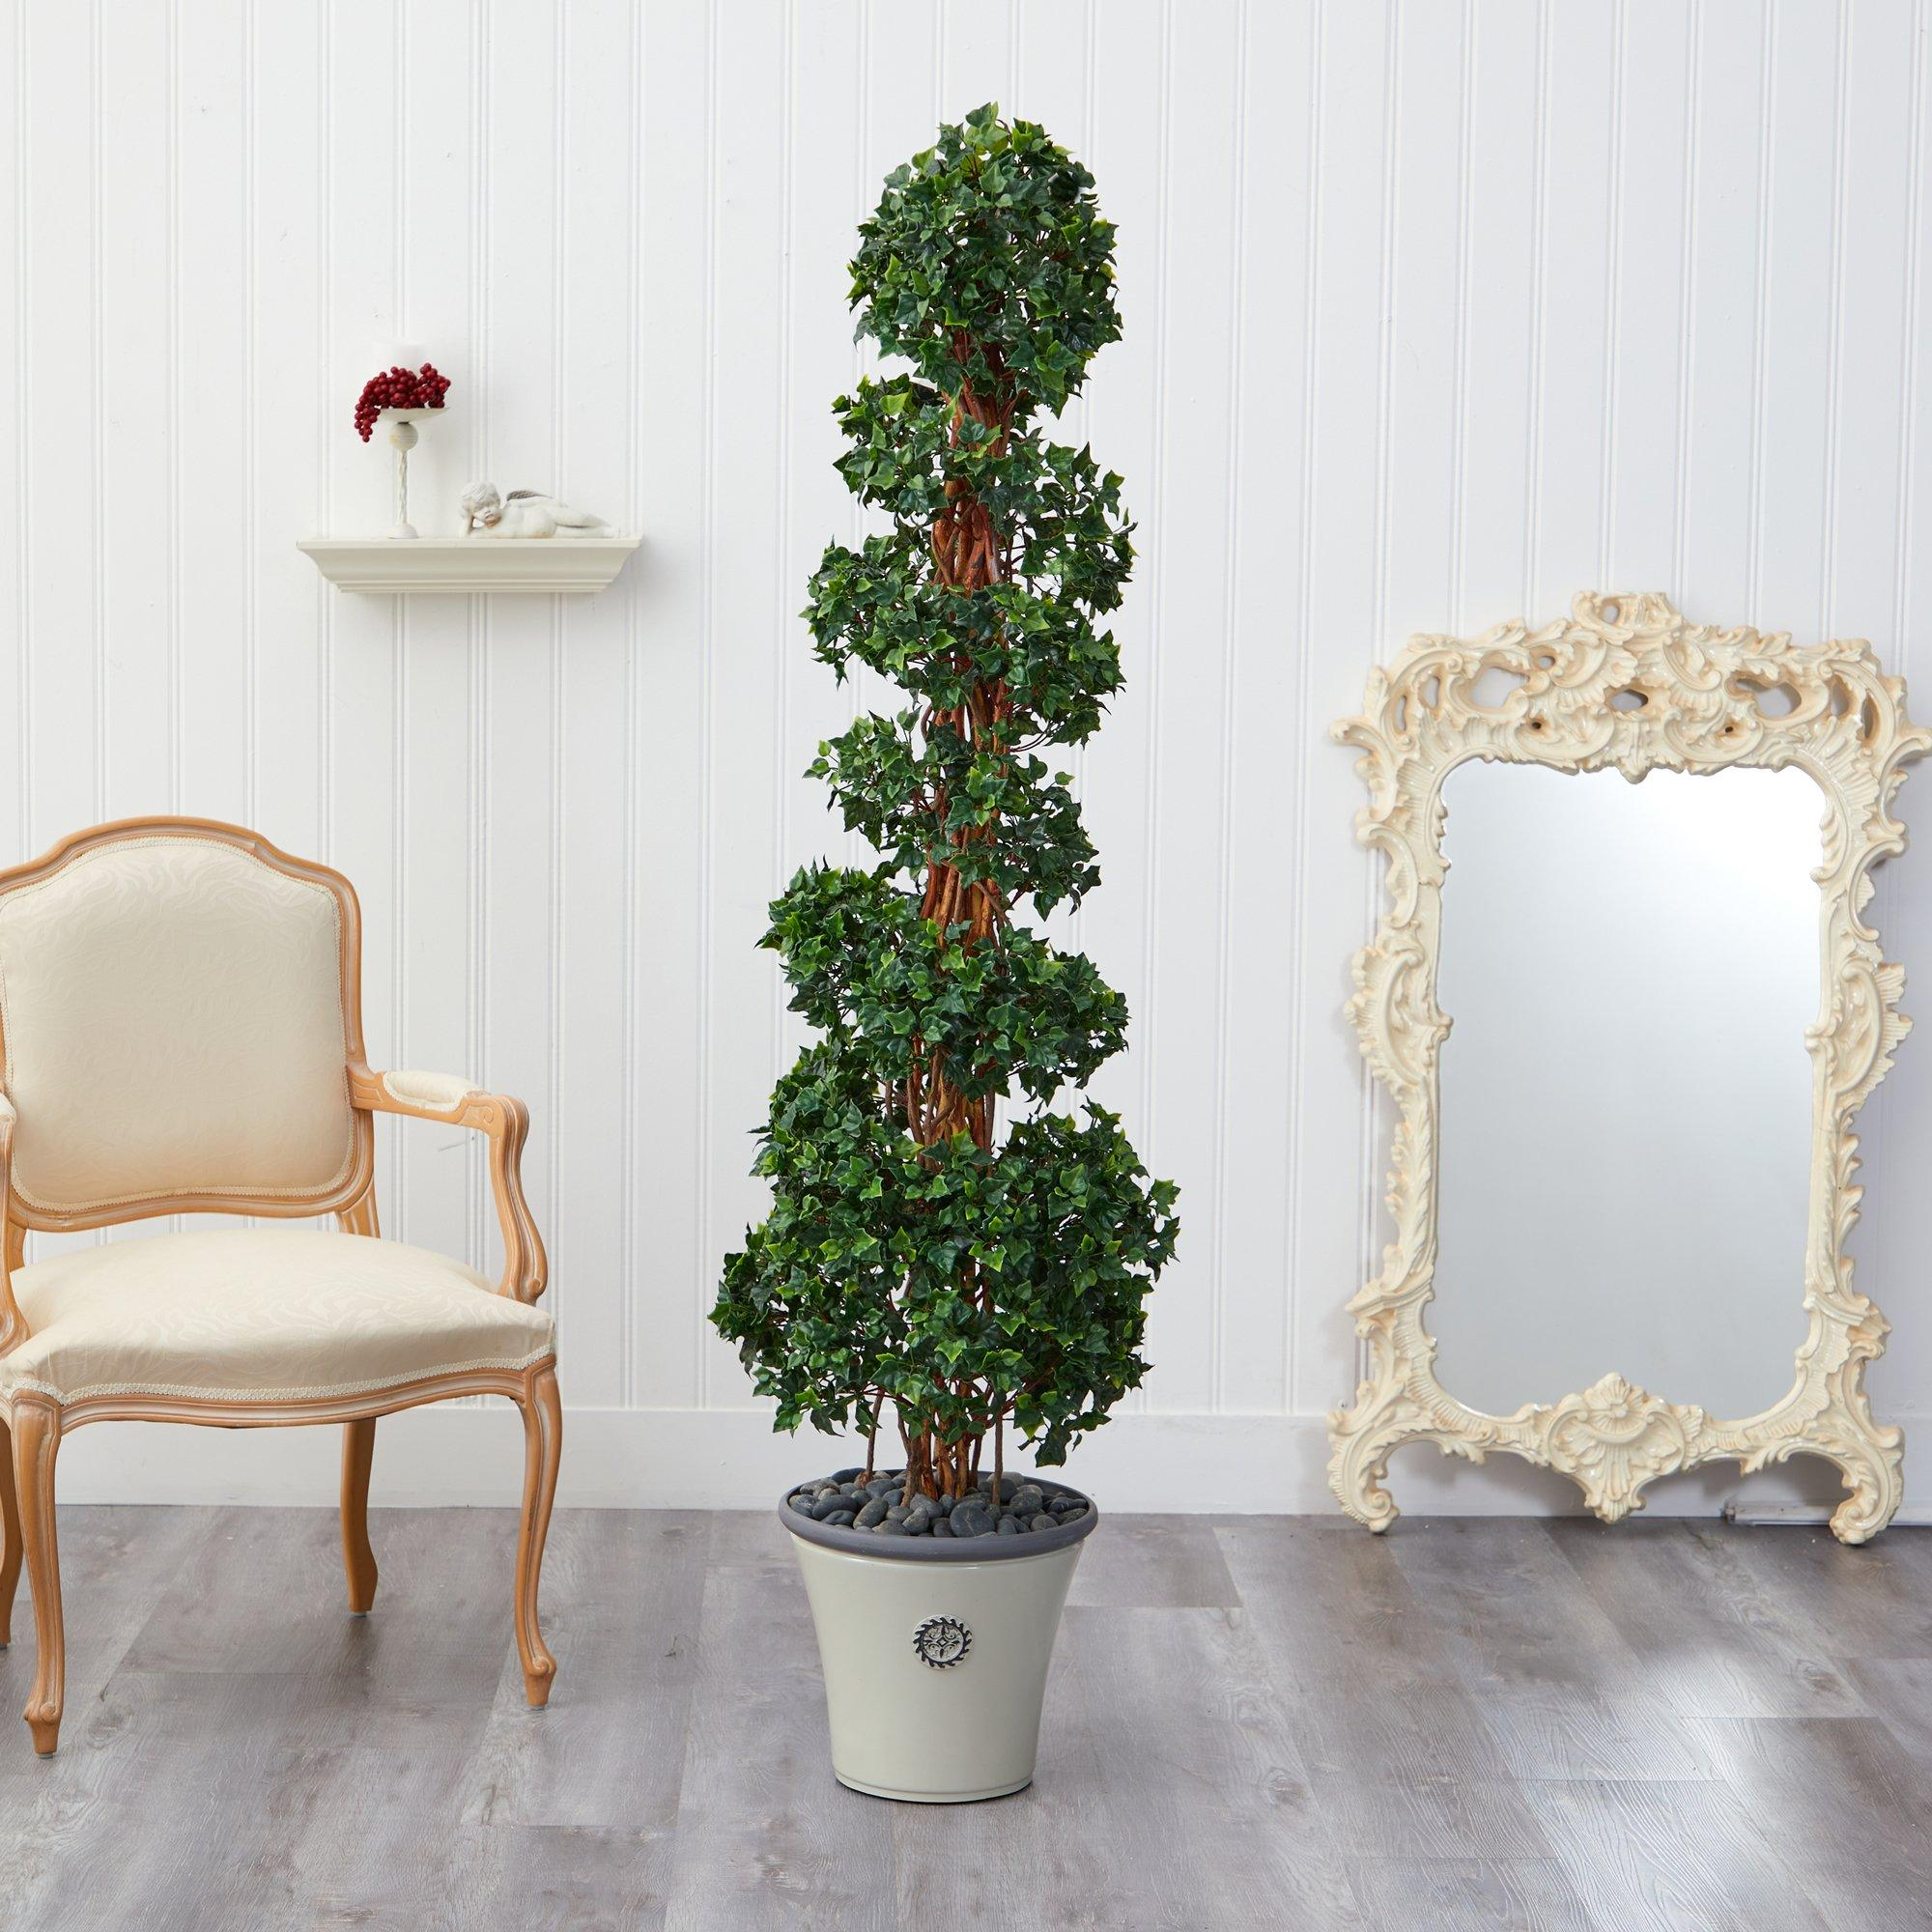 68 English Ivy Topiary Spiral Artificial Tree In Decorative Planter Uv Resistant Indoor Outdoor Nearly Natural